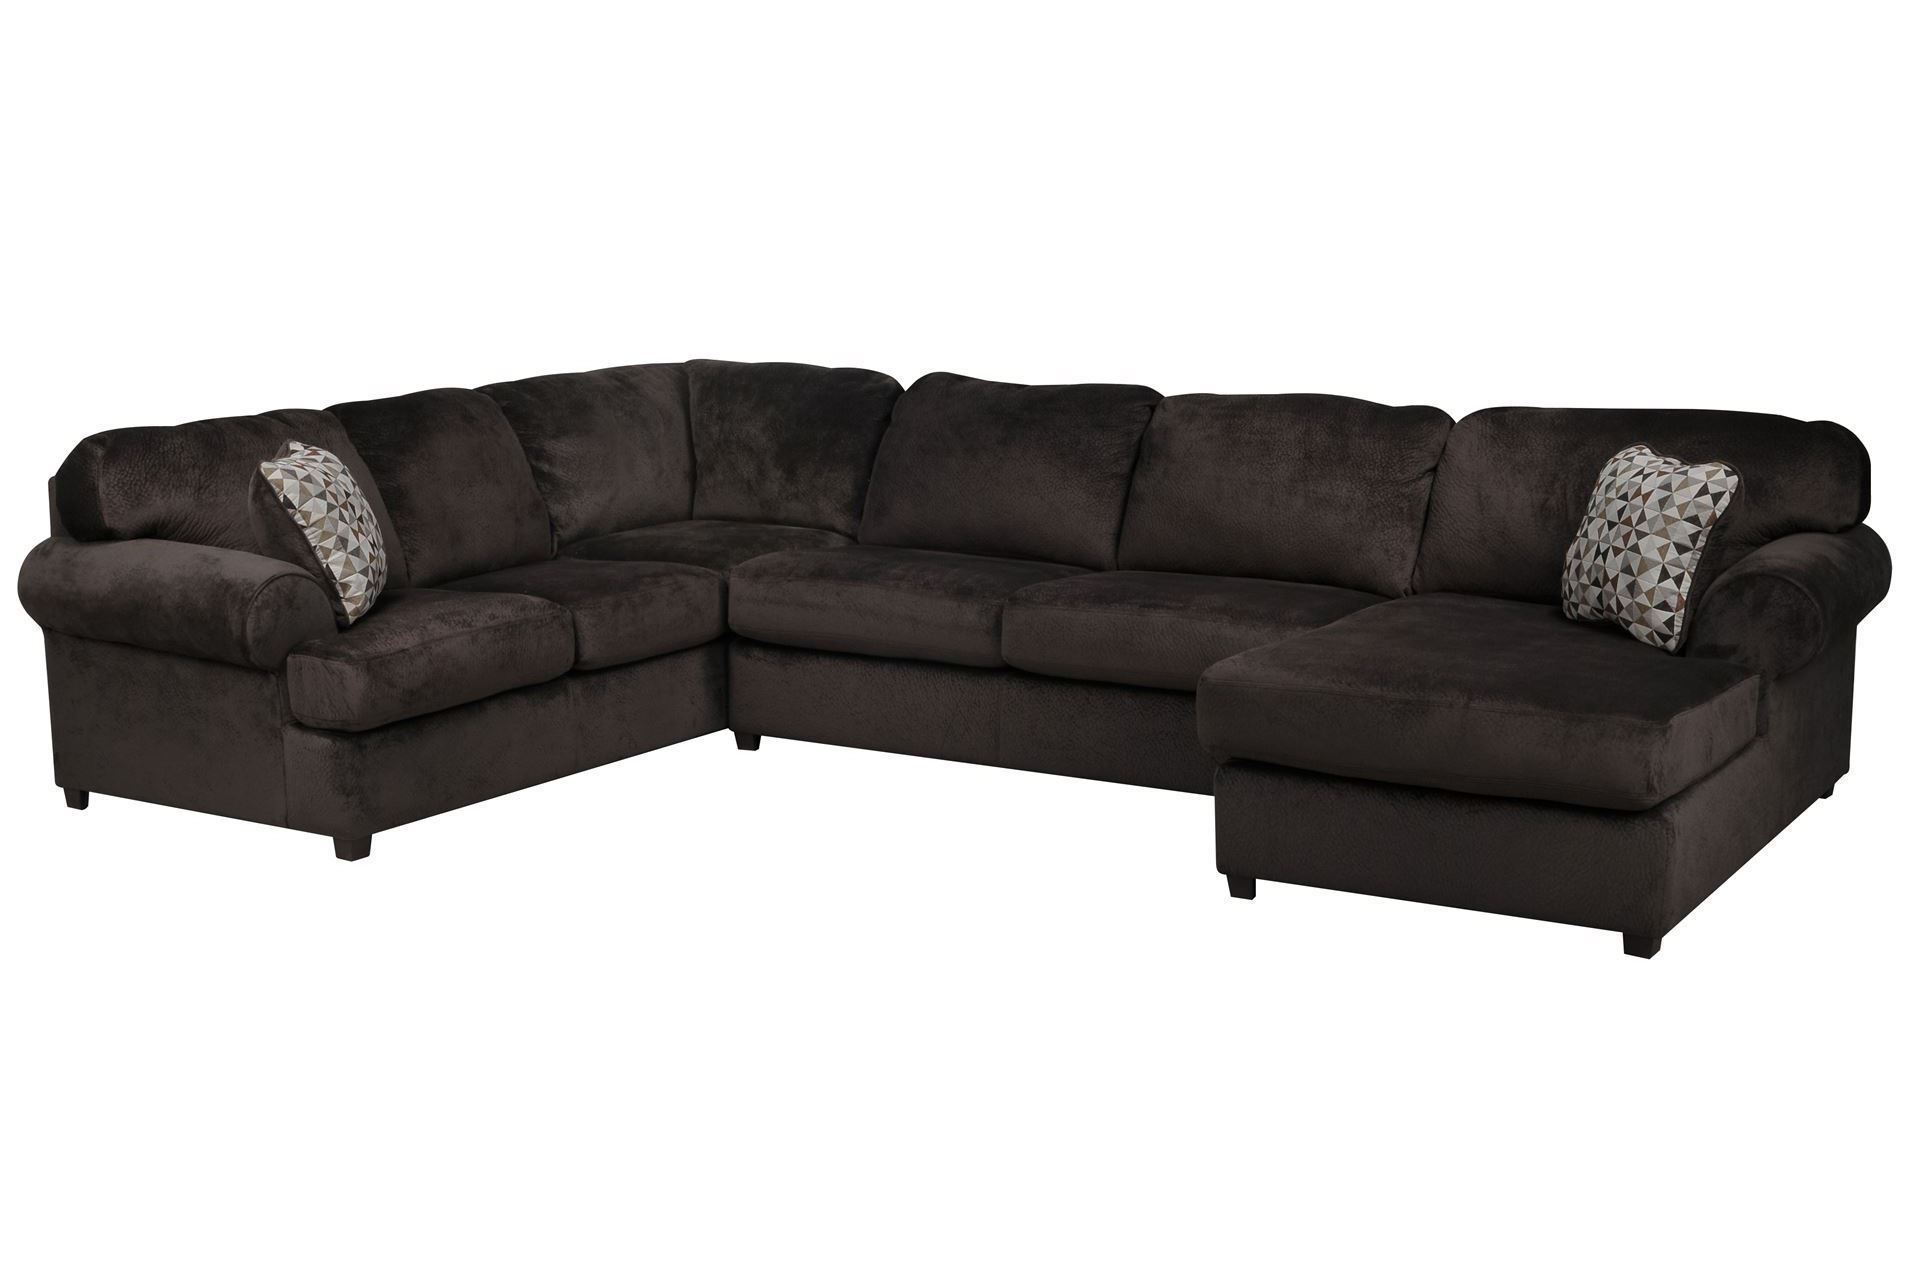 Jessa Place Chocolate 3 Piece Sectional W/Raf Chaise For Norfolk Chocolate 3 Piece Sectionals With Raf Chaise (View 1 of 15)